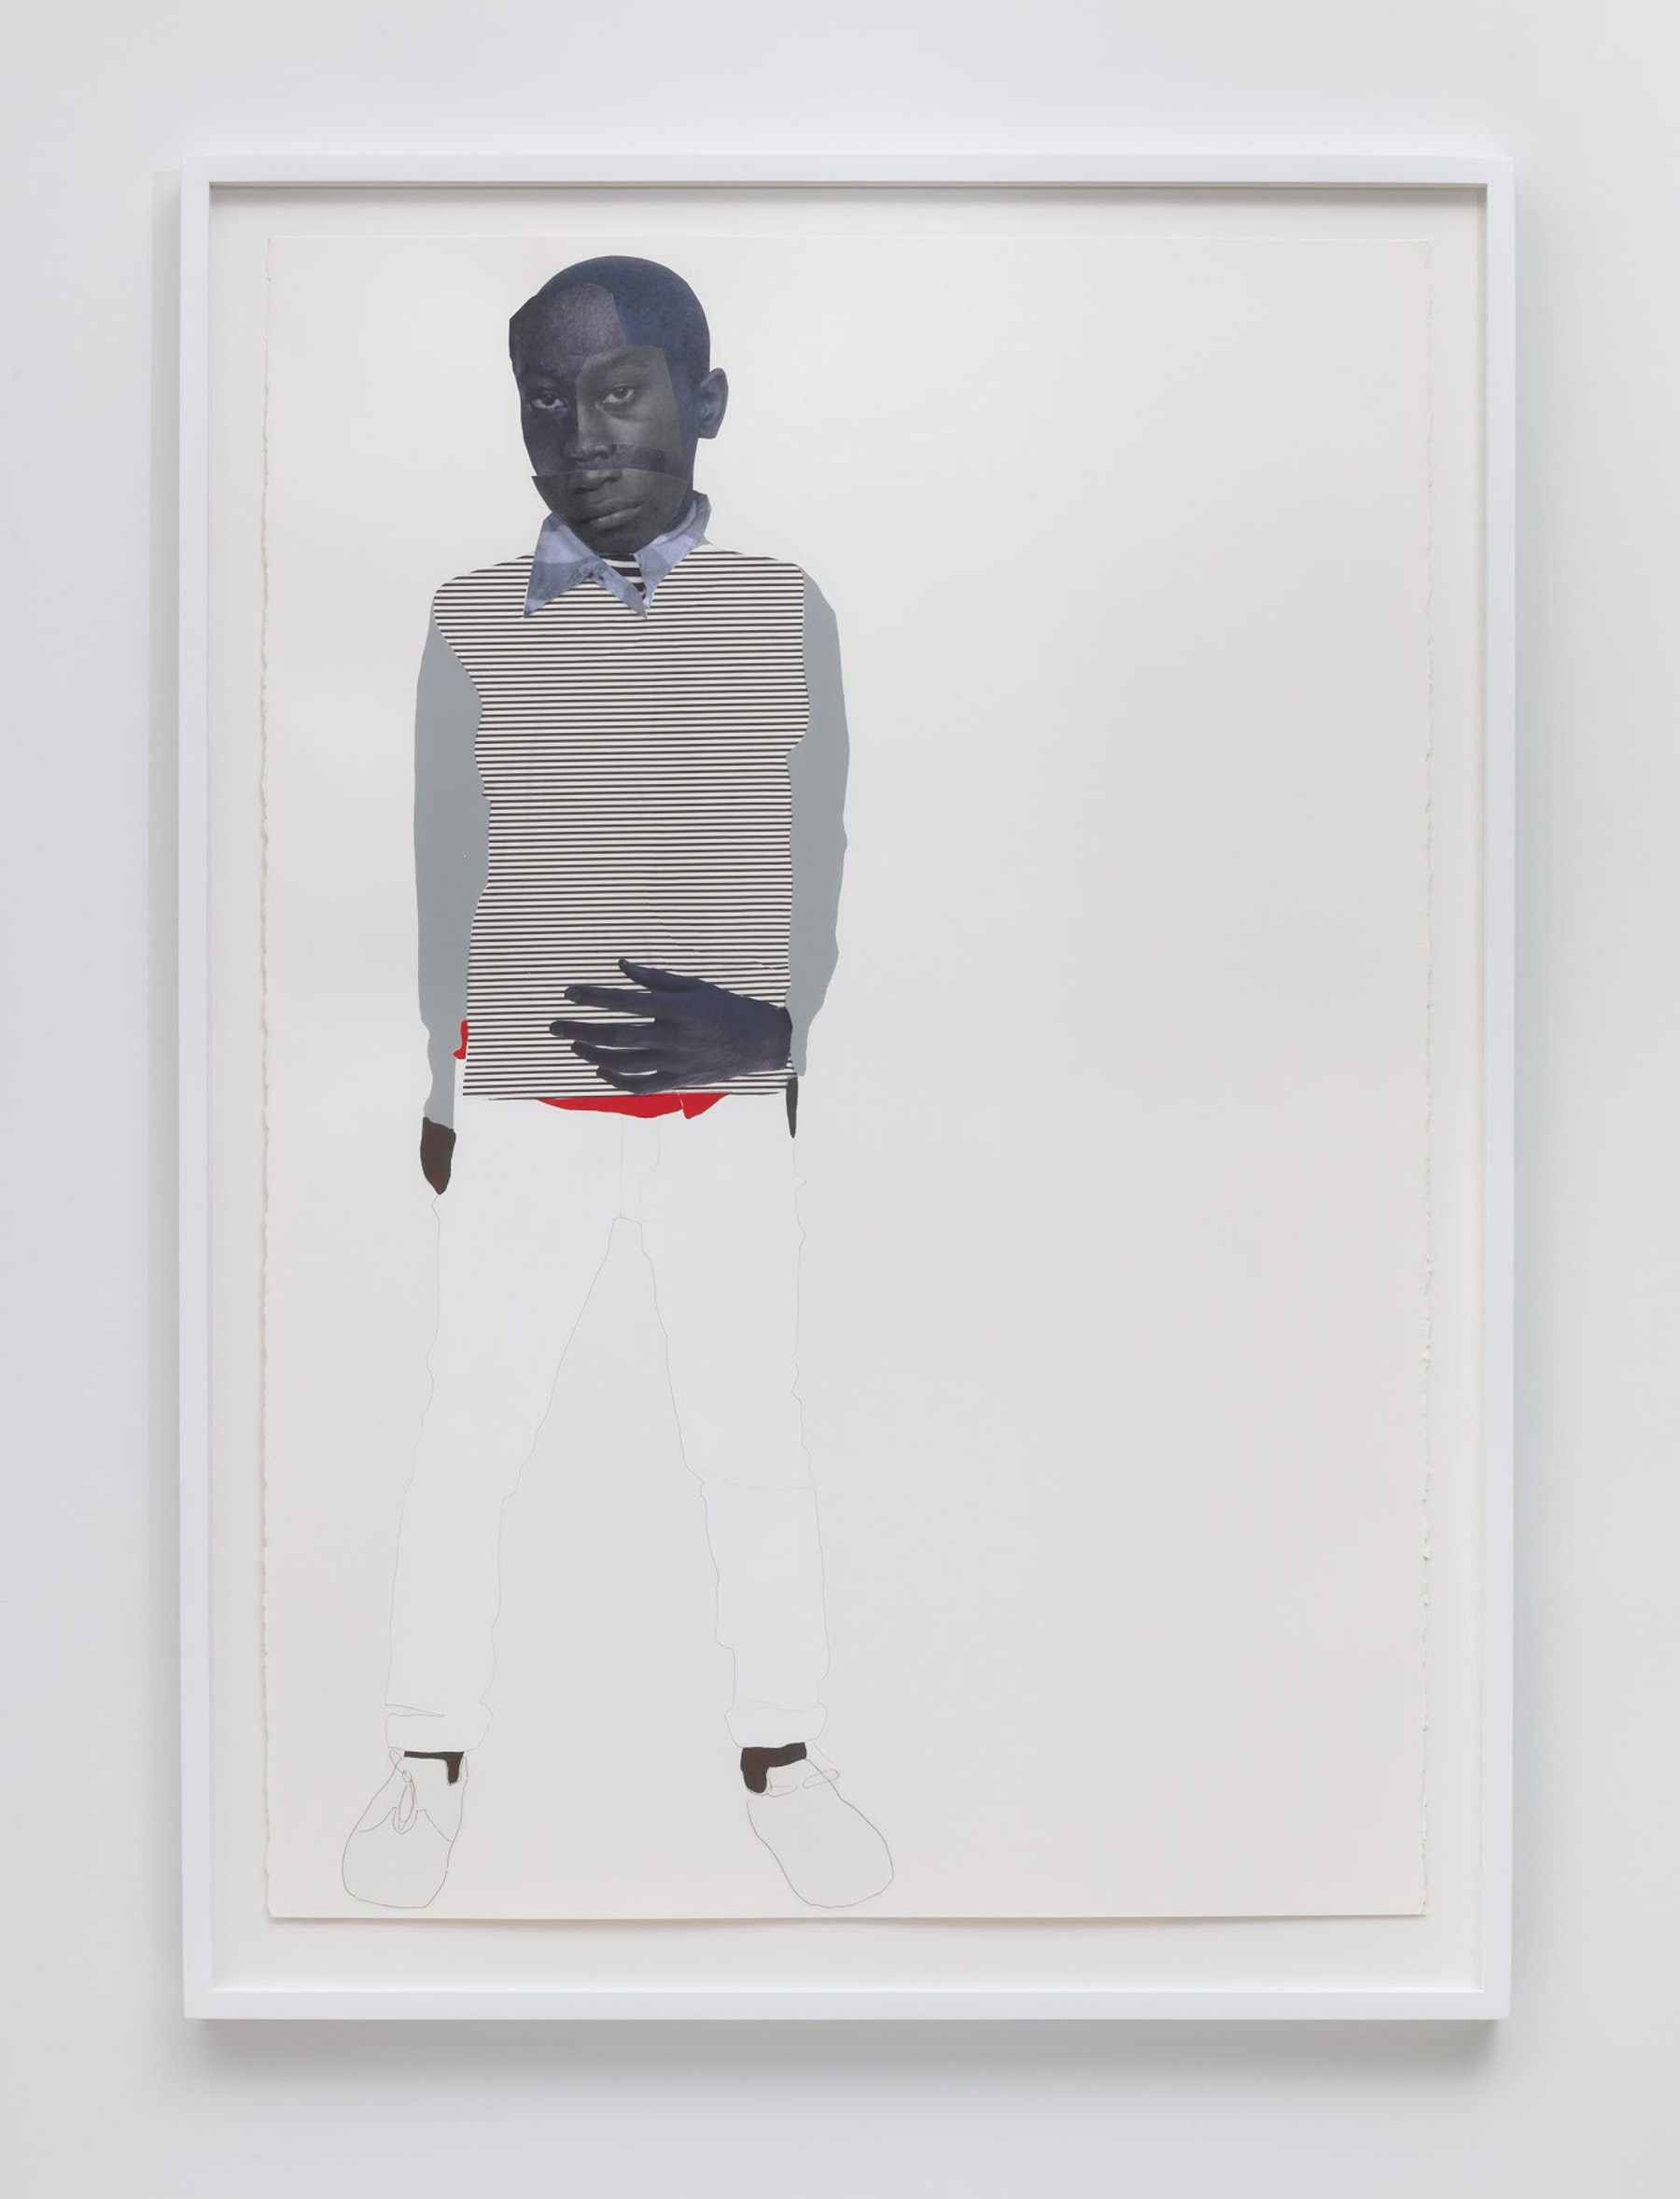 """Deborah Roberts """"Stinney (Nessun Dorma Series),"""" 2019 Mixed media collage on paper 60 x 40"""" [HxW] (152.4 x 101.6 cm) paper size, 67 x 48 x 2.25"""" [HxWxD] (170.18 x 121.92 x 5.71 cm) framed Inventory #ROB416 Courtesy of the artist and Vielmetter Los Angeles Photo credit: Robert Wedemeyer"""